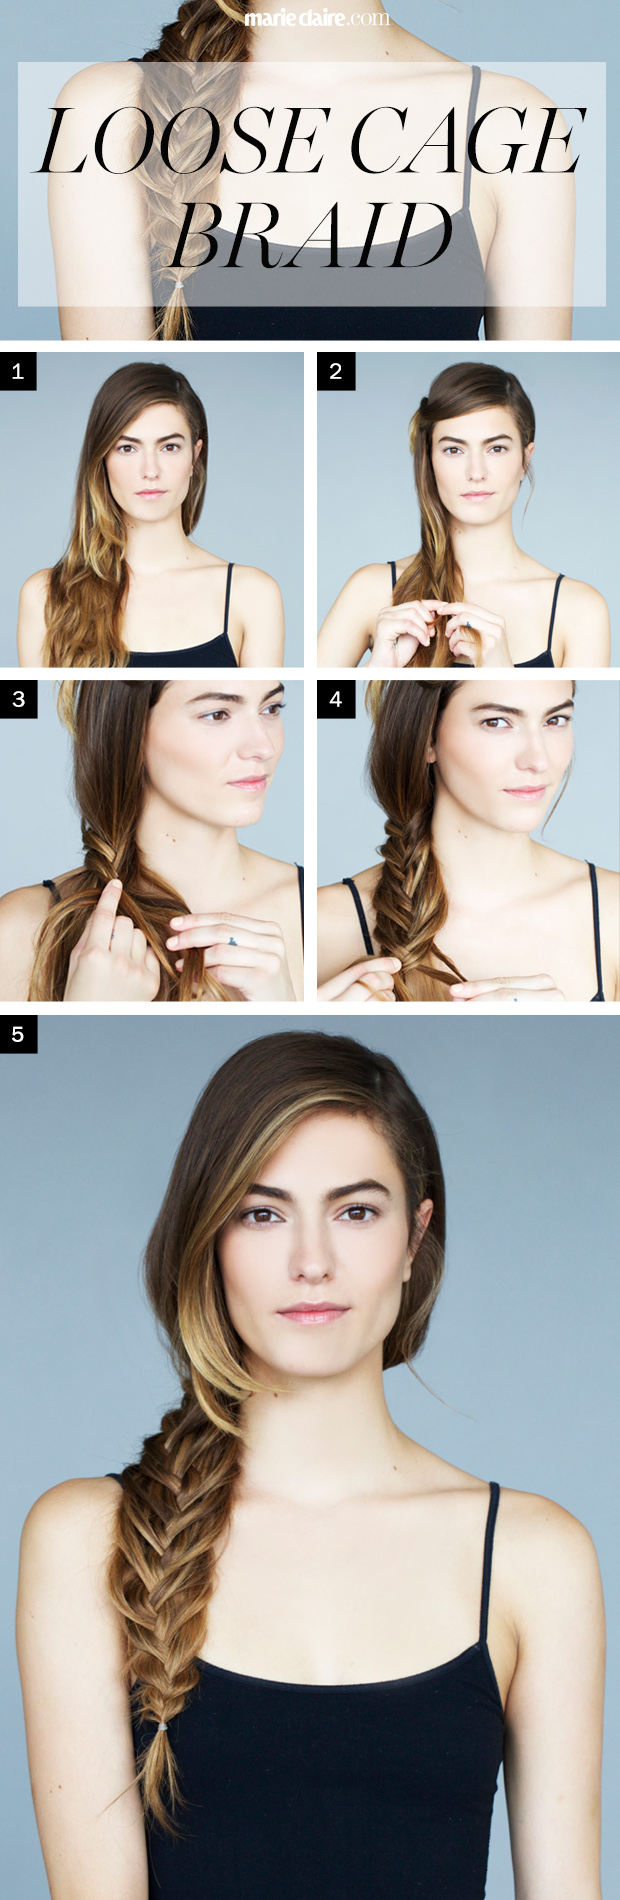 54834f36a3d0f_-_mc_hairtutorial_loosecagebraid.jpg